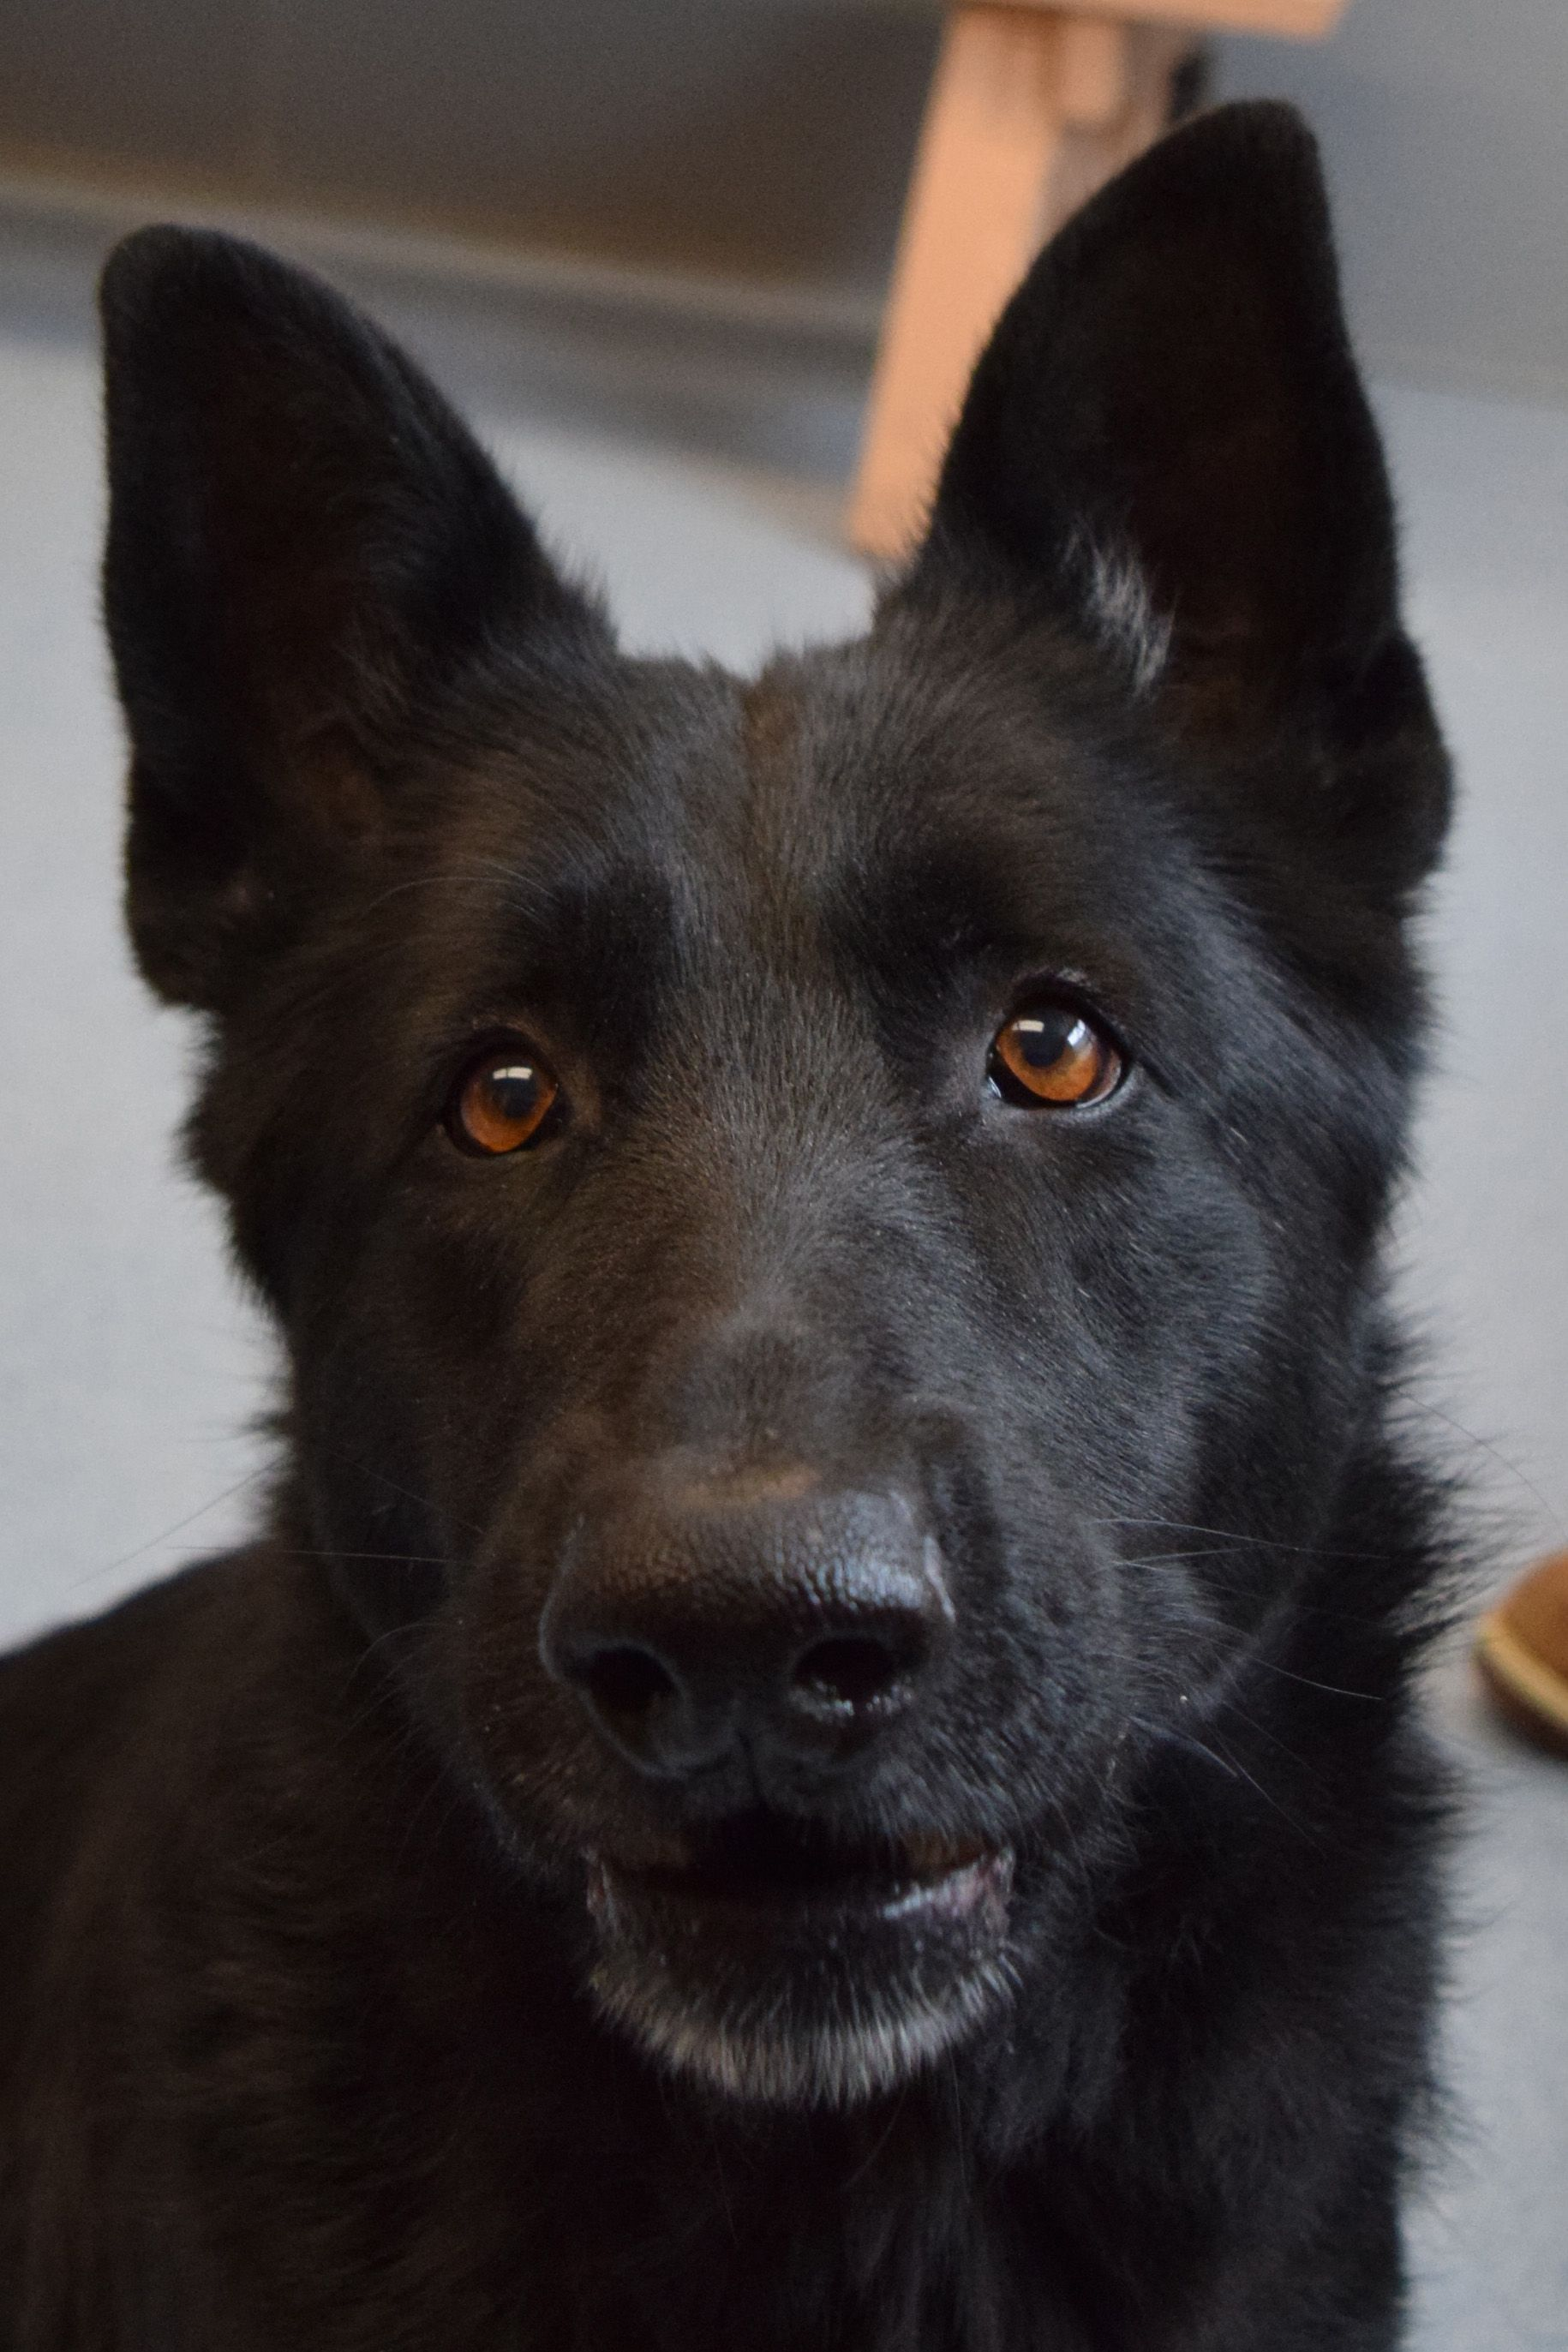 German Shepherd Dogs Image By Islip Animal Shelter And Adopt On